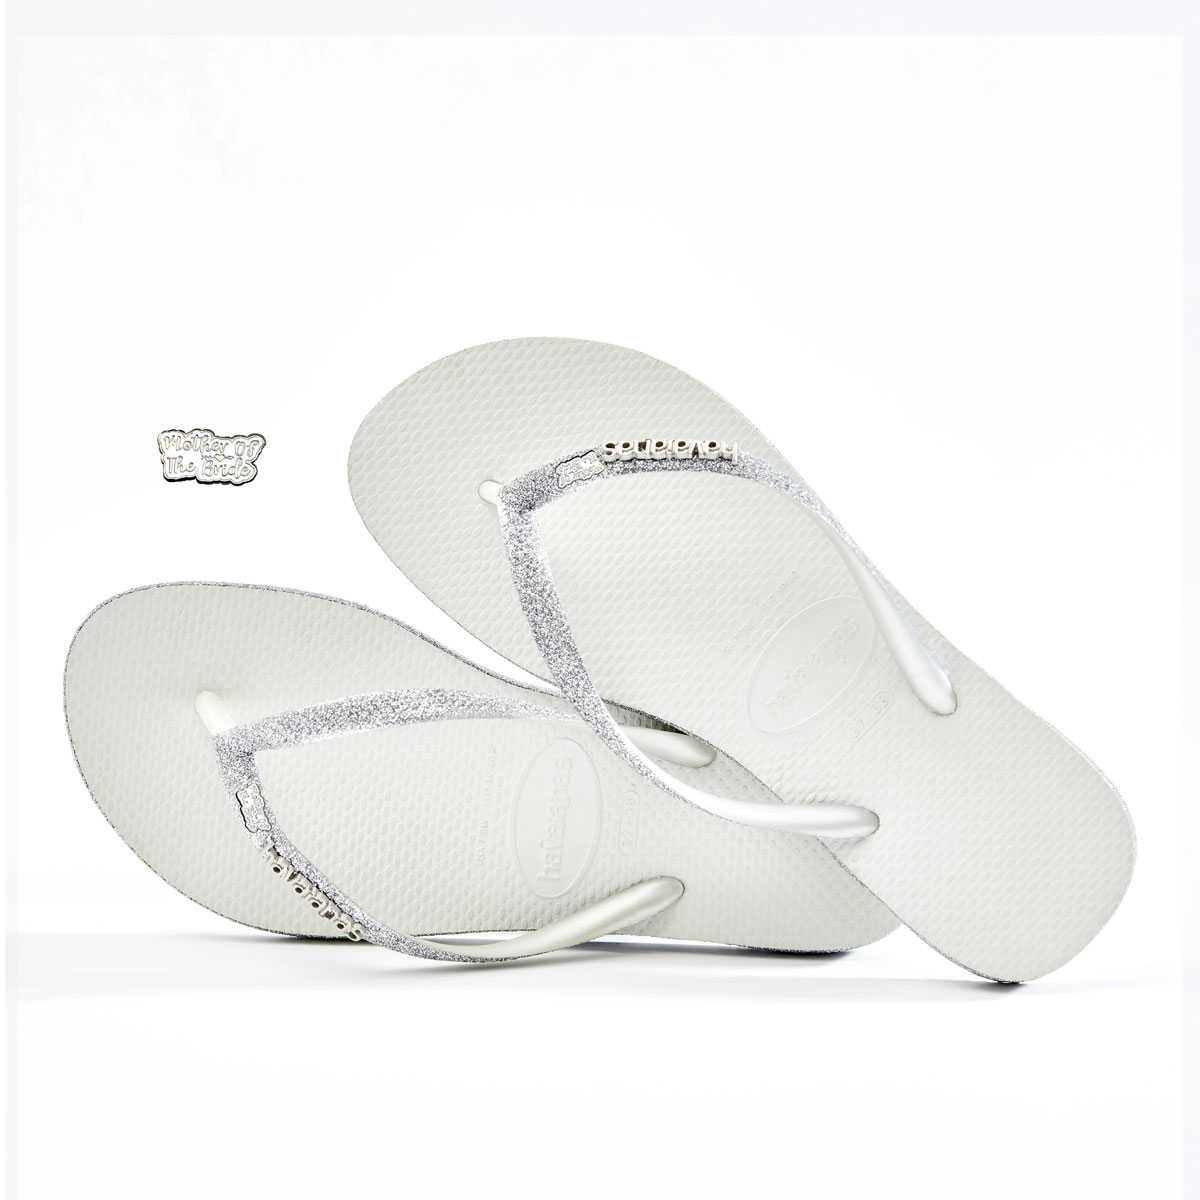 havaianas slim white sparkle silver white mother of the bride charm